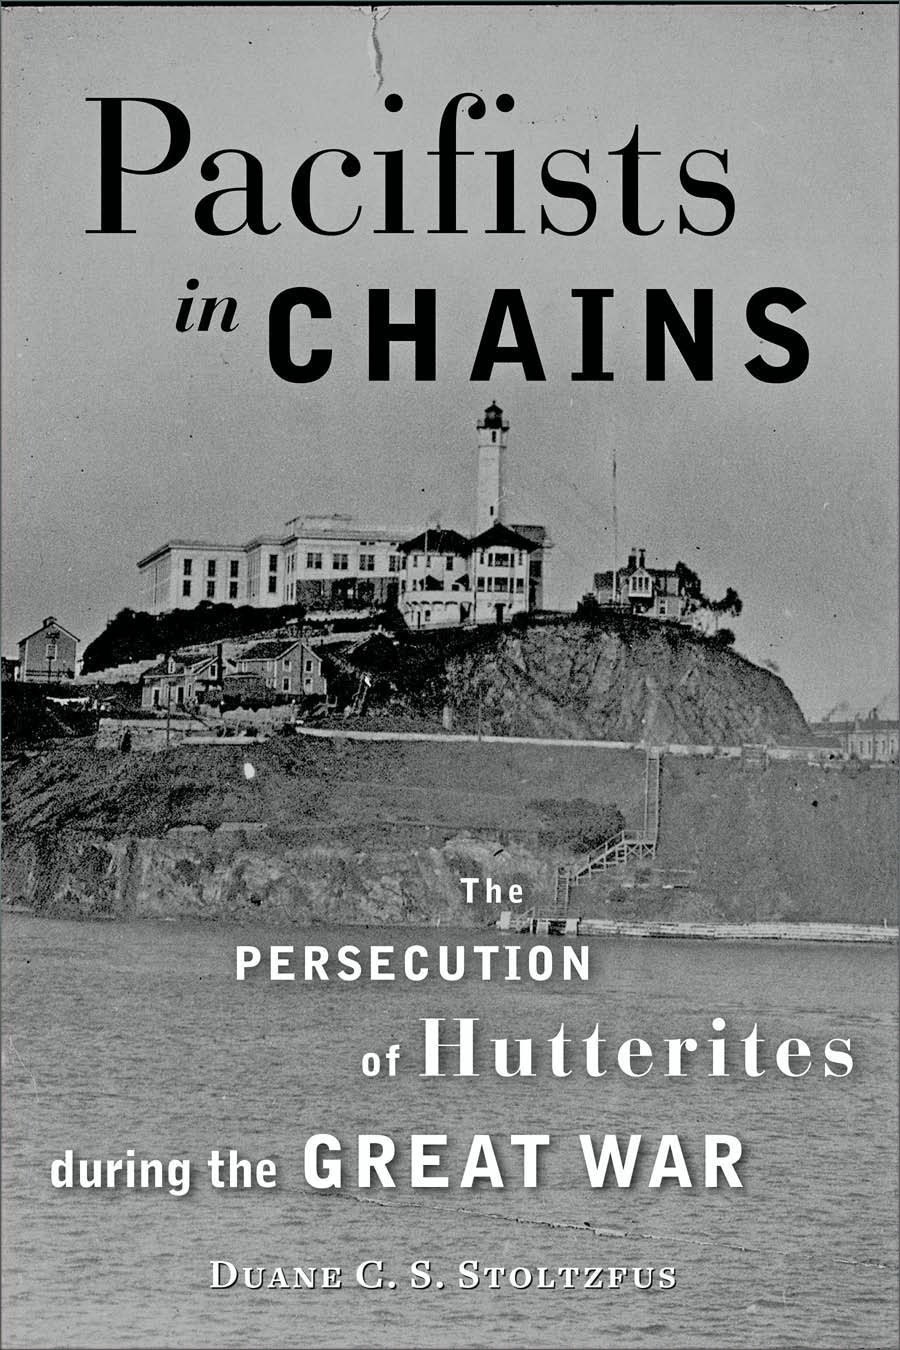 the persecution of the innocent hutterite people Mennonite nazis: a lesson from history the penalties placed on the german people by america and their allies crippled the economic stability of germany a first-generation hutterite group led by eberhard arnold [10] was just becoming organized during this time period.